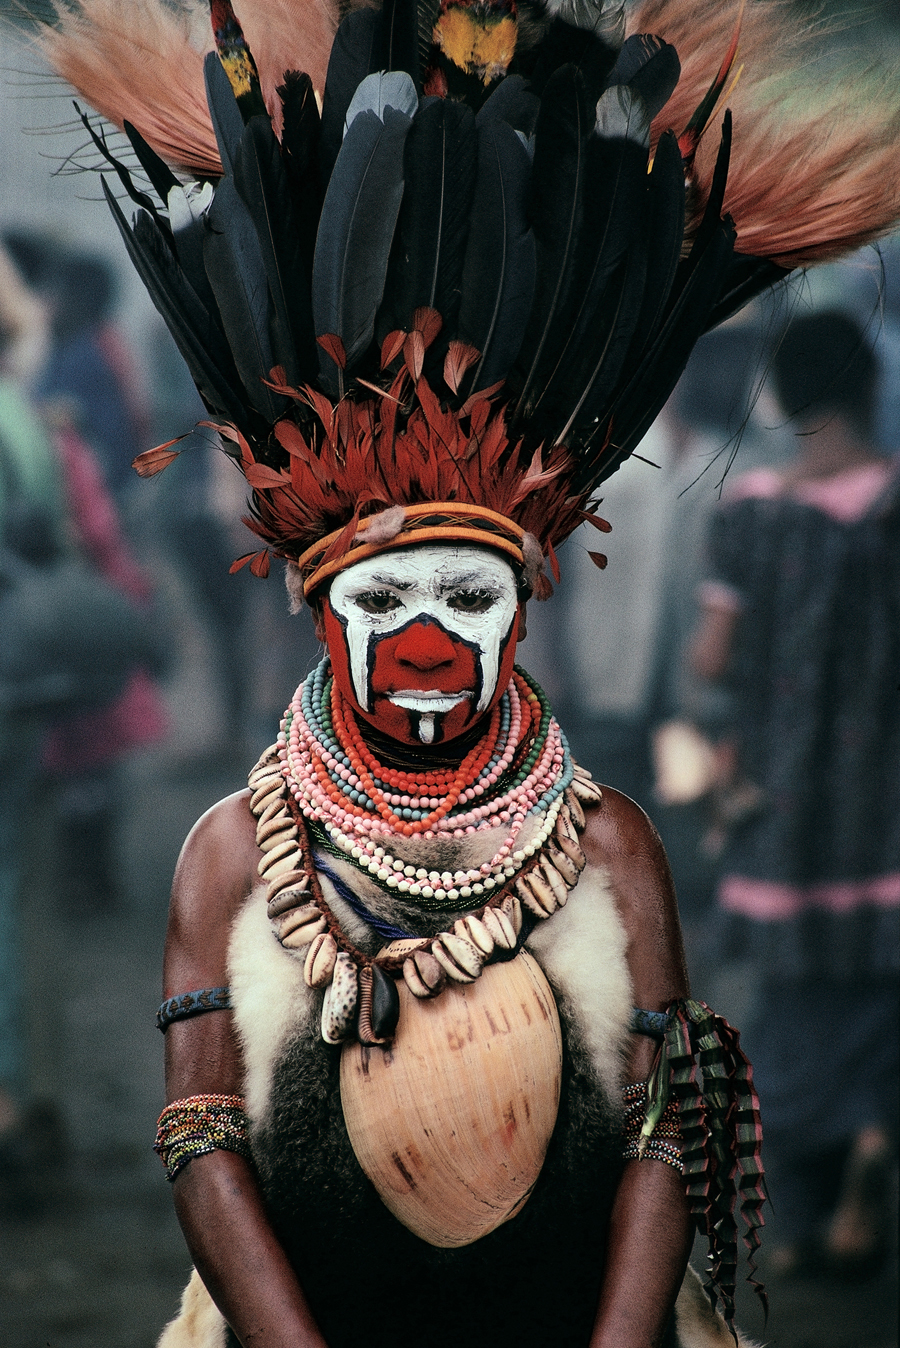 "Cary Wolinsky  New Guinea Dancer, Mt. Hagan, Papua New Guinea  Archival inkjet print 27 x 18"" CW25"